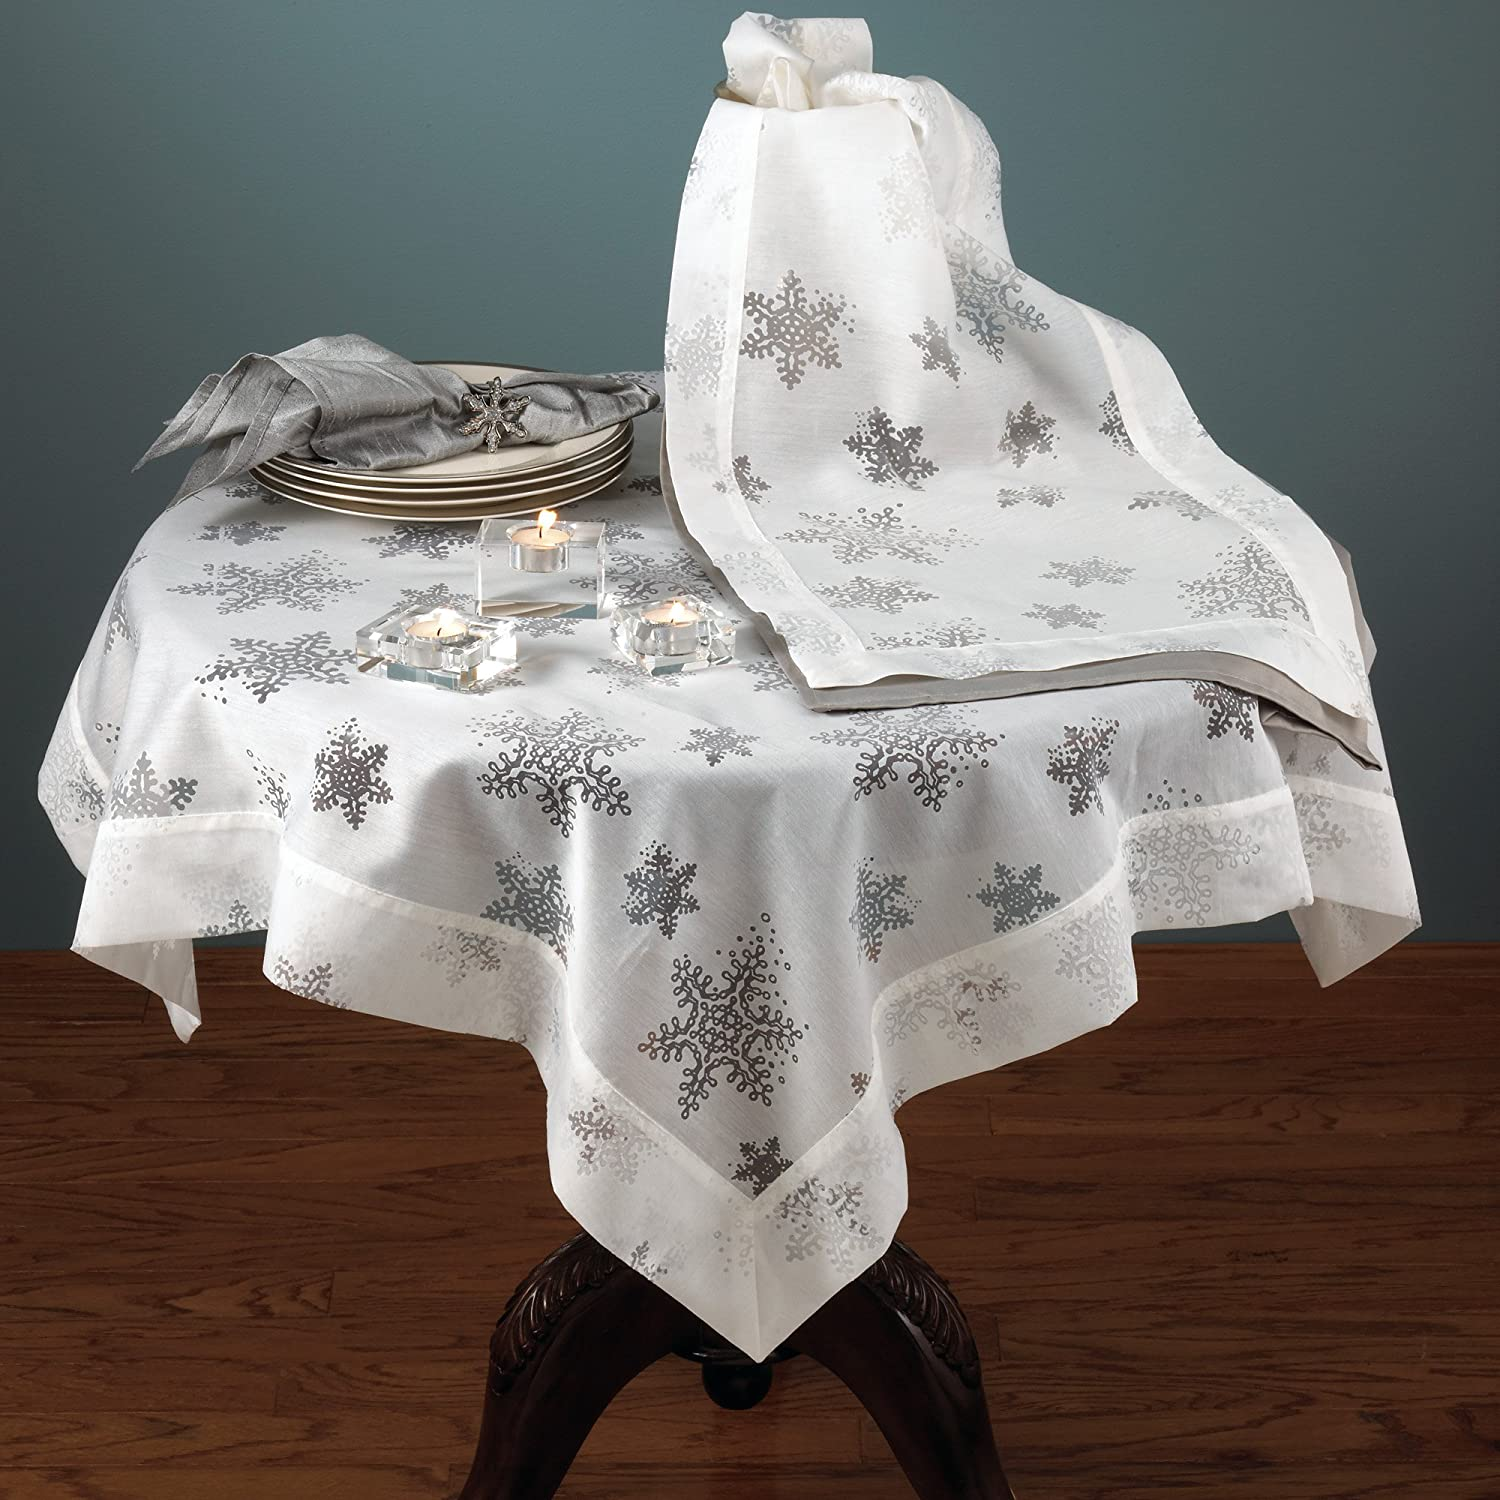 A Beautiful Holiday Tablecloth With Burnout Voile Evening Snowflake Design  Off White And White Colors Measures 80 Inches By 80 Inches Made ...